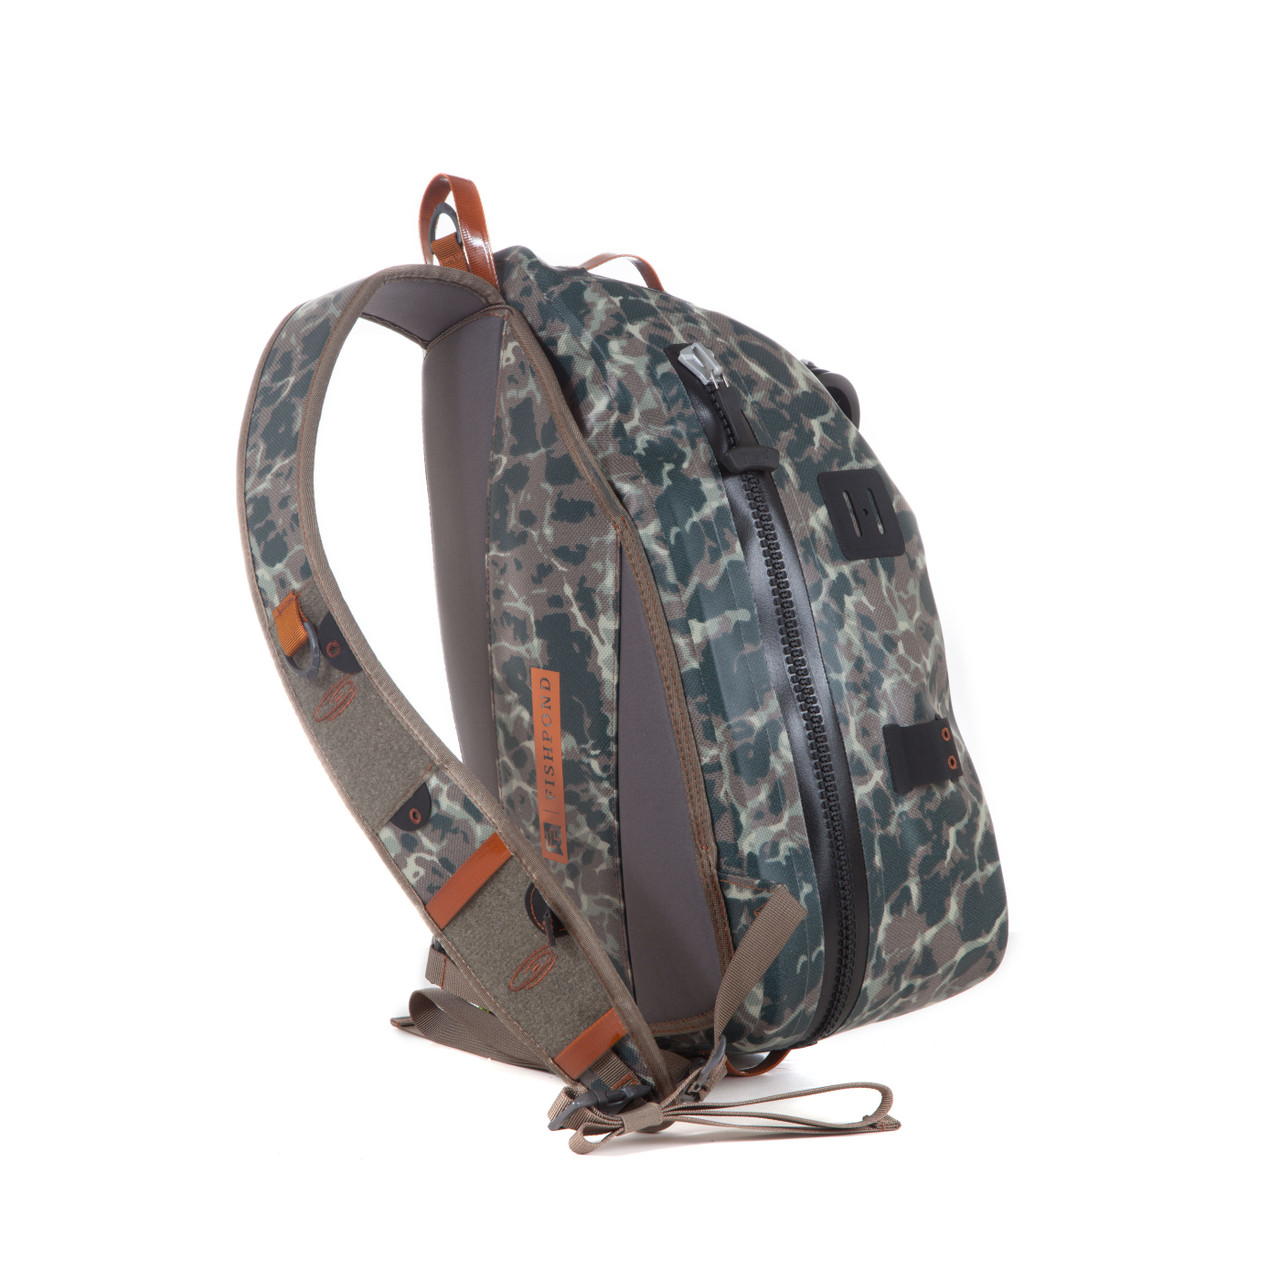 Fishpond Thunderhead Submersible Sling Pack, Riverbed Camo